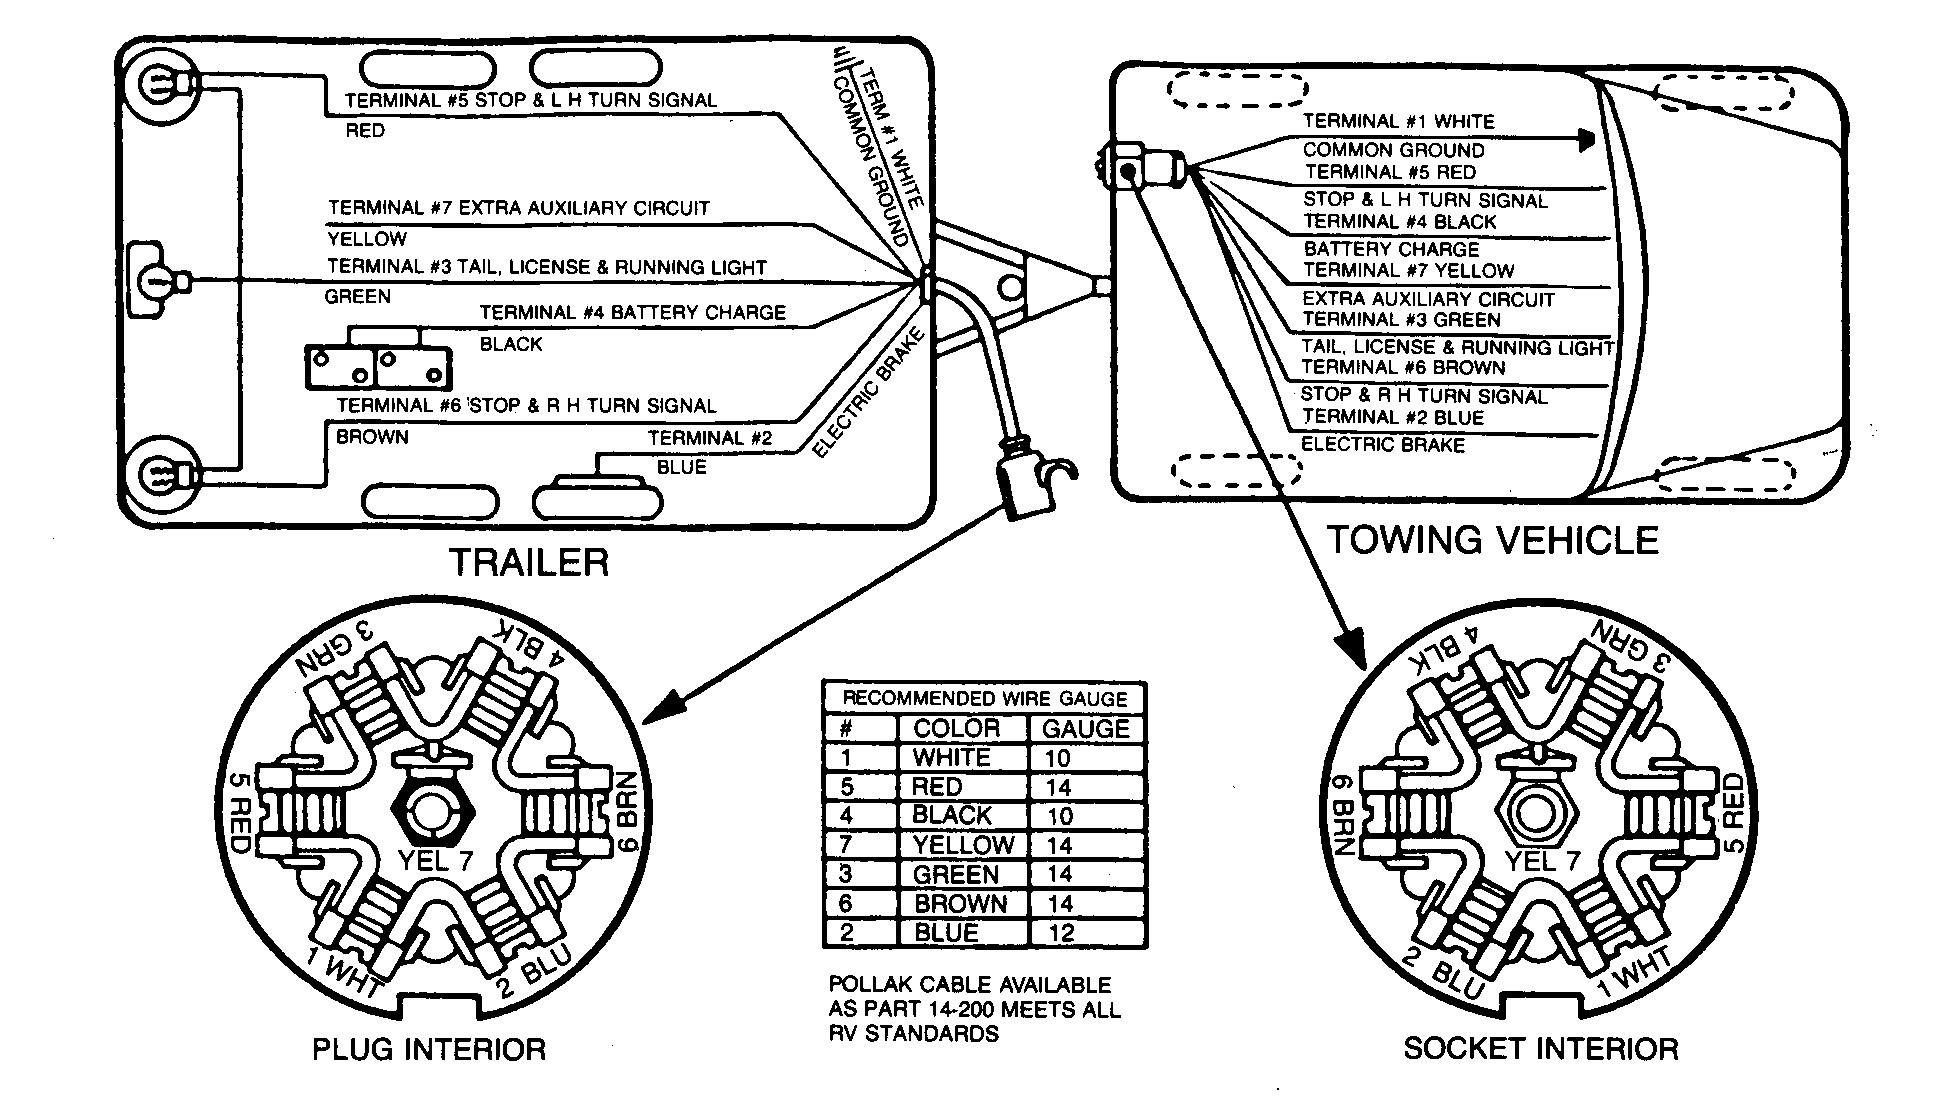 Pj Trailer Brake Wiring Diagram | Wiring Diagram - Pj Trailer Brake Wiring Diagram